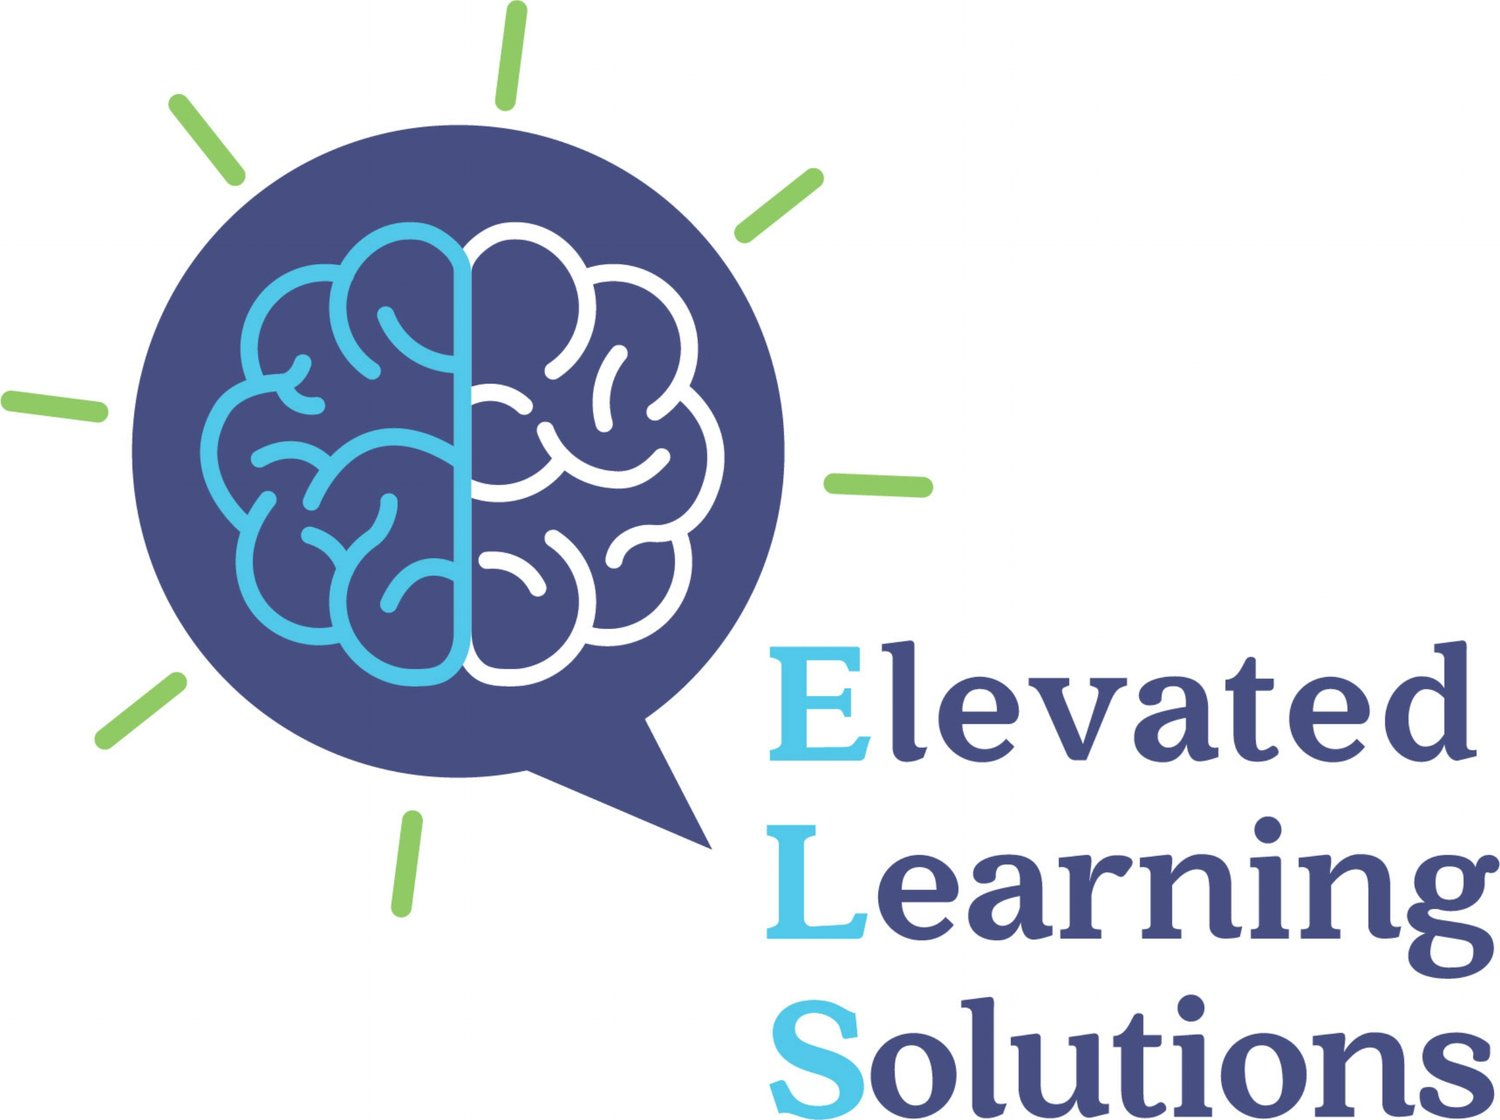 Elevated Learning Solutions